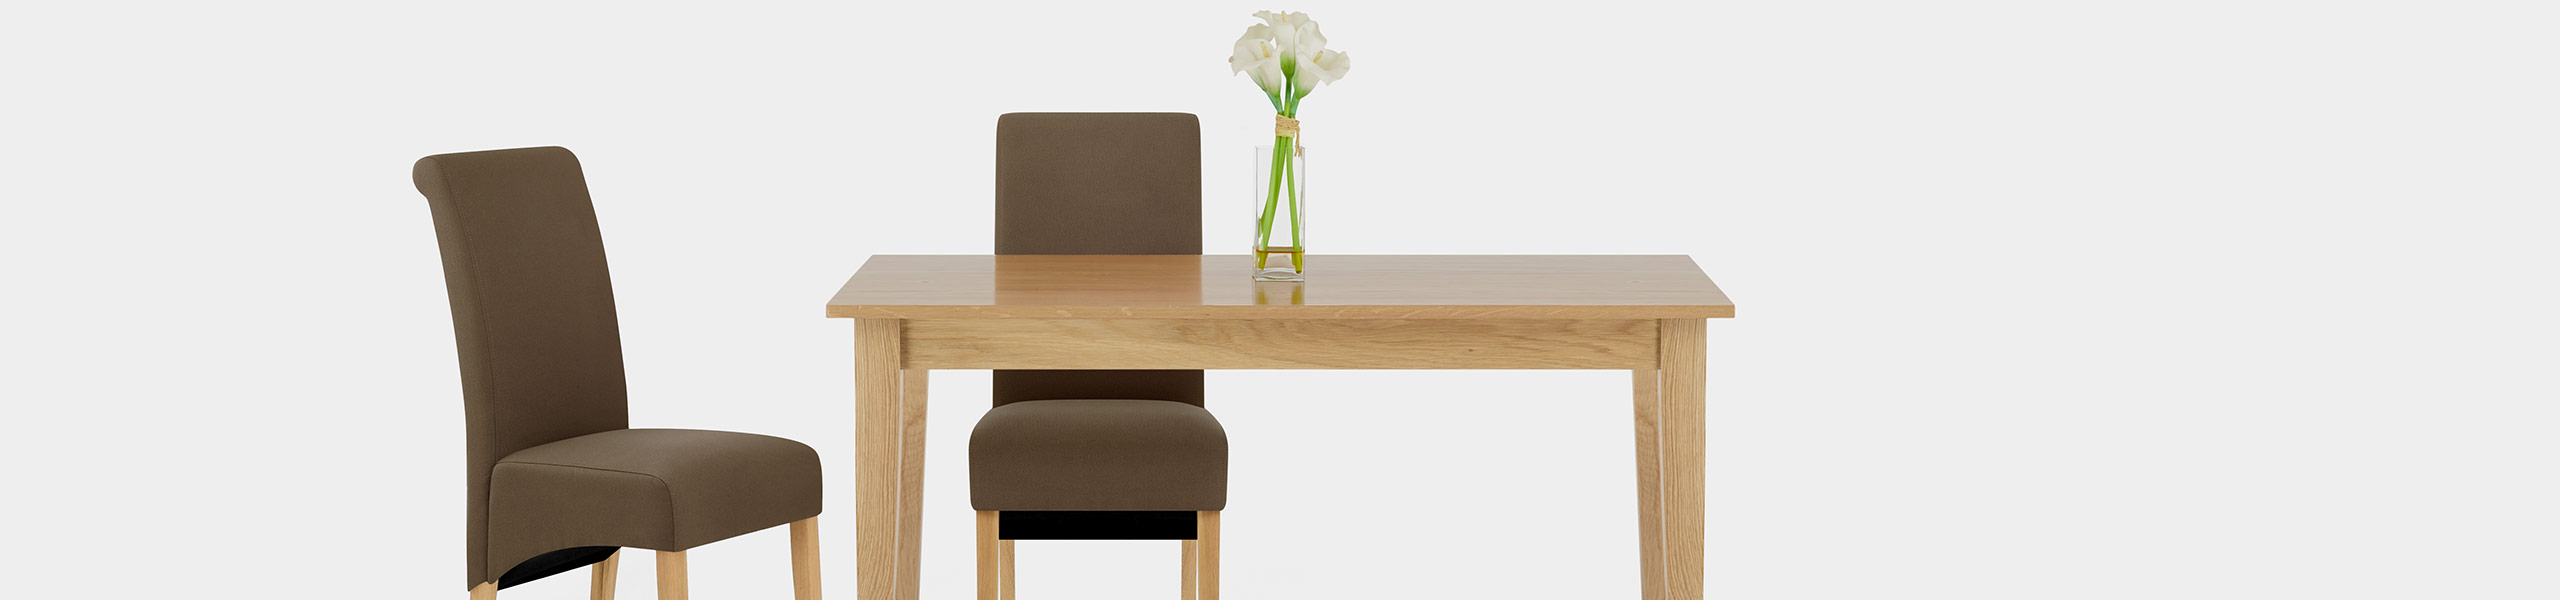 Carlo Oak Chair Brown Fabric Video Banner